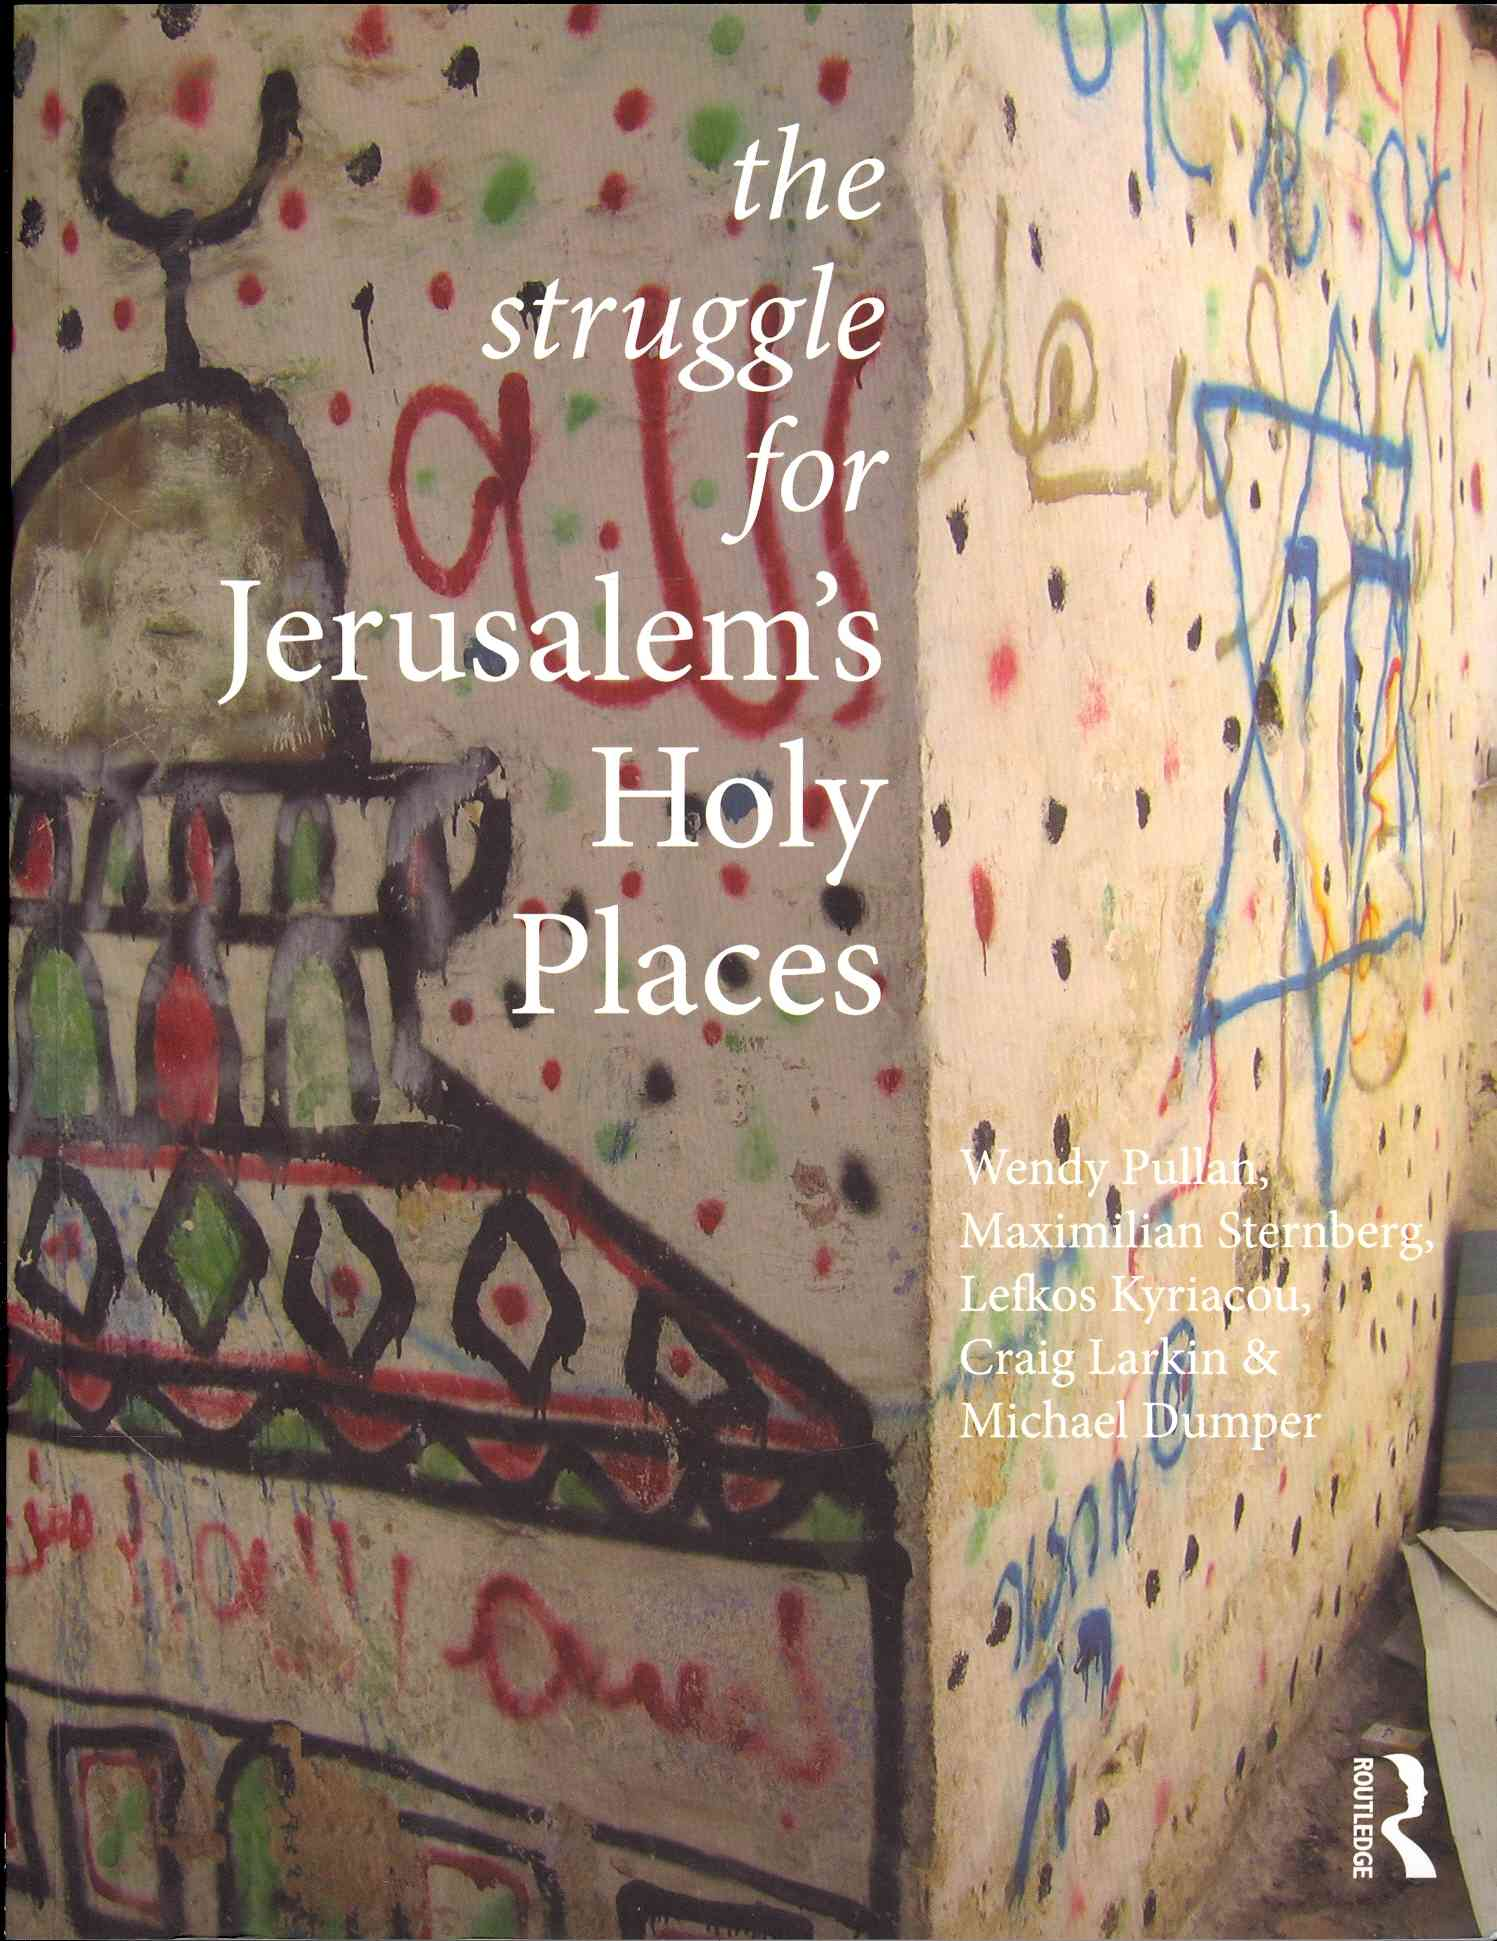 The Struggle for Jerusalem's Holy Places By Pullan, Wendy/ Sternberg, Maximilian/ Dumper, Michael/ Larkin, Craig/ Kyriacou, Lefkos